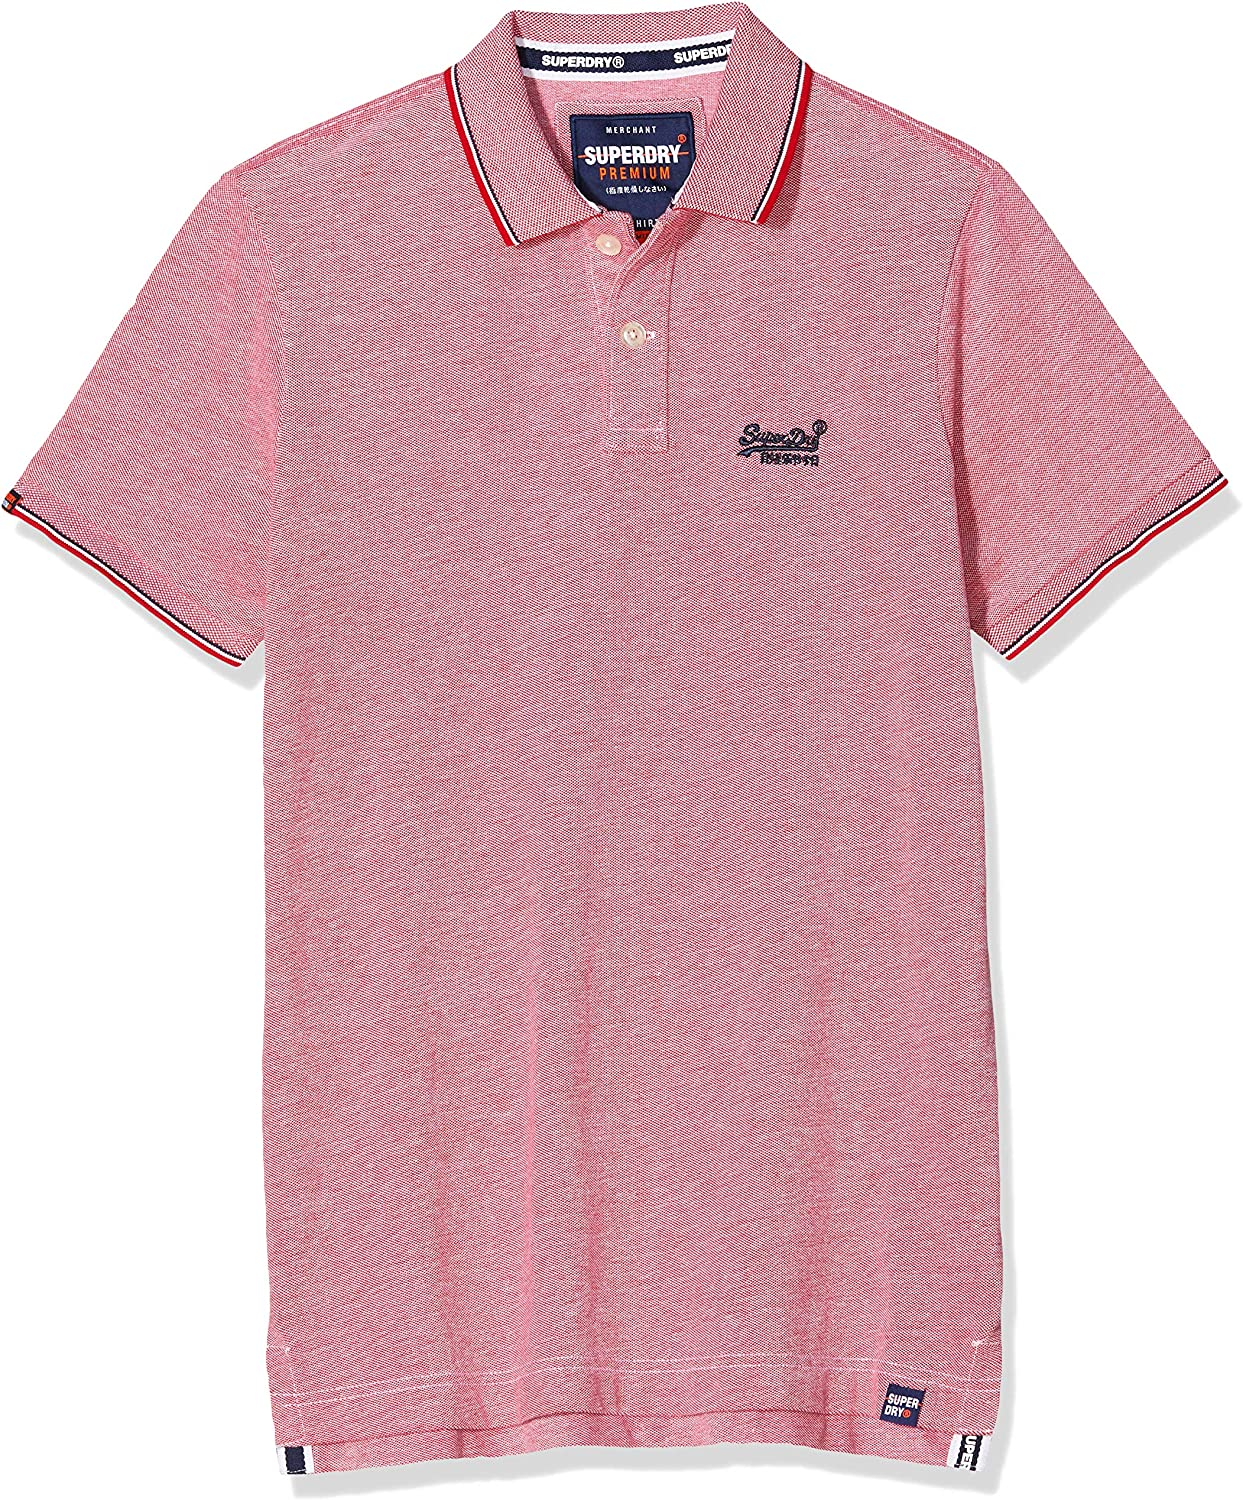 Superdry Free shipping on posting Outlet ☆ Free Shipping reviews Poolside Pique Shirt Polo